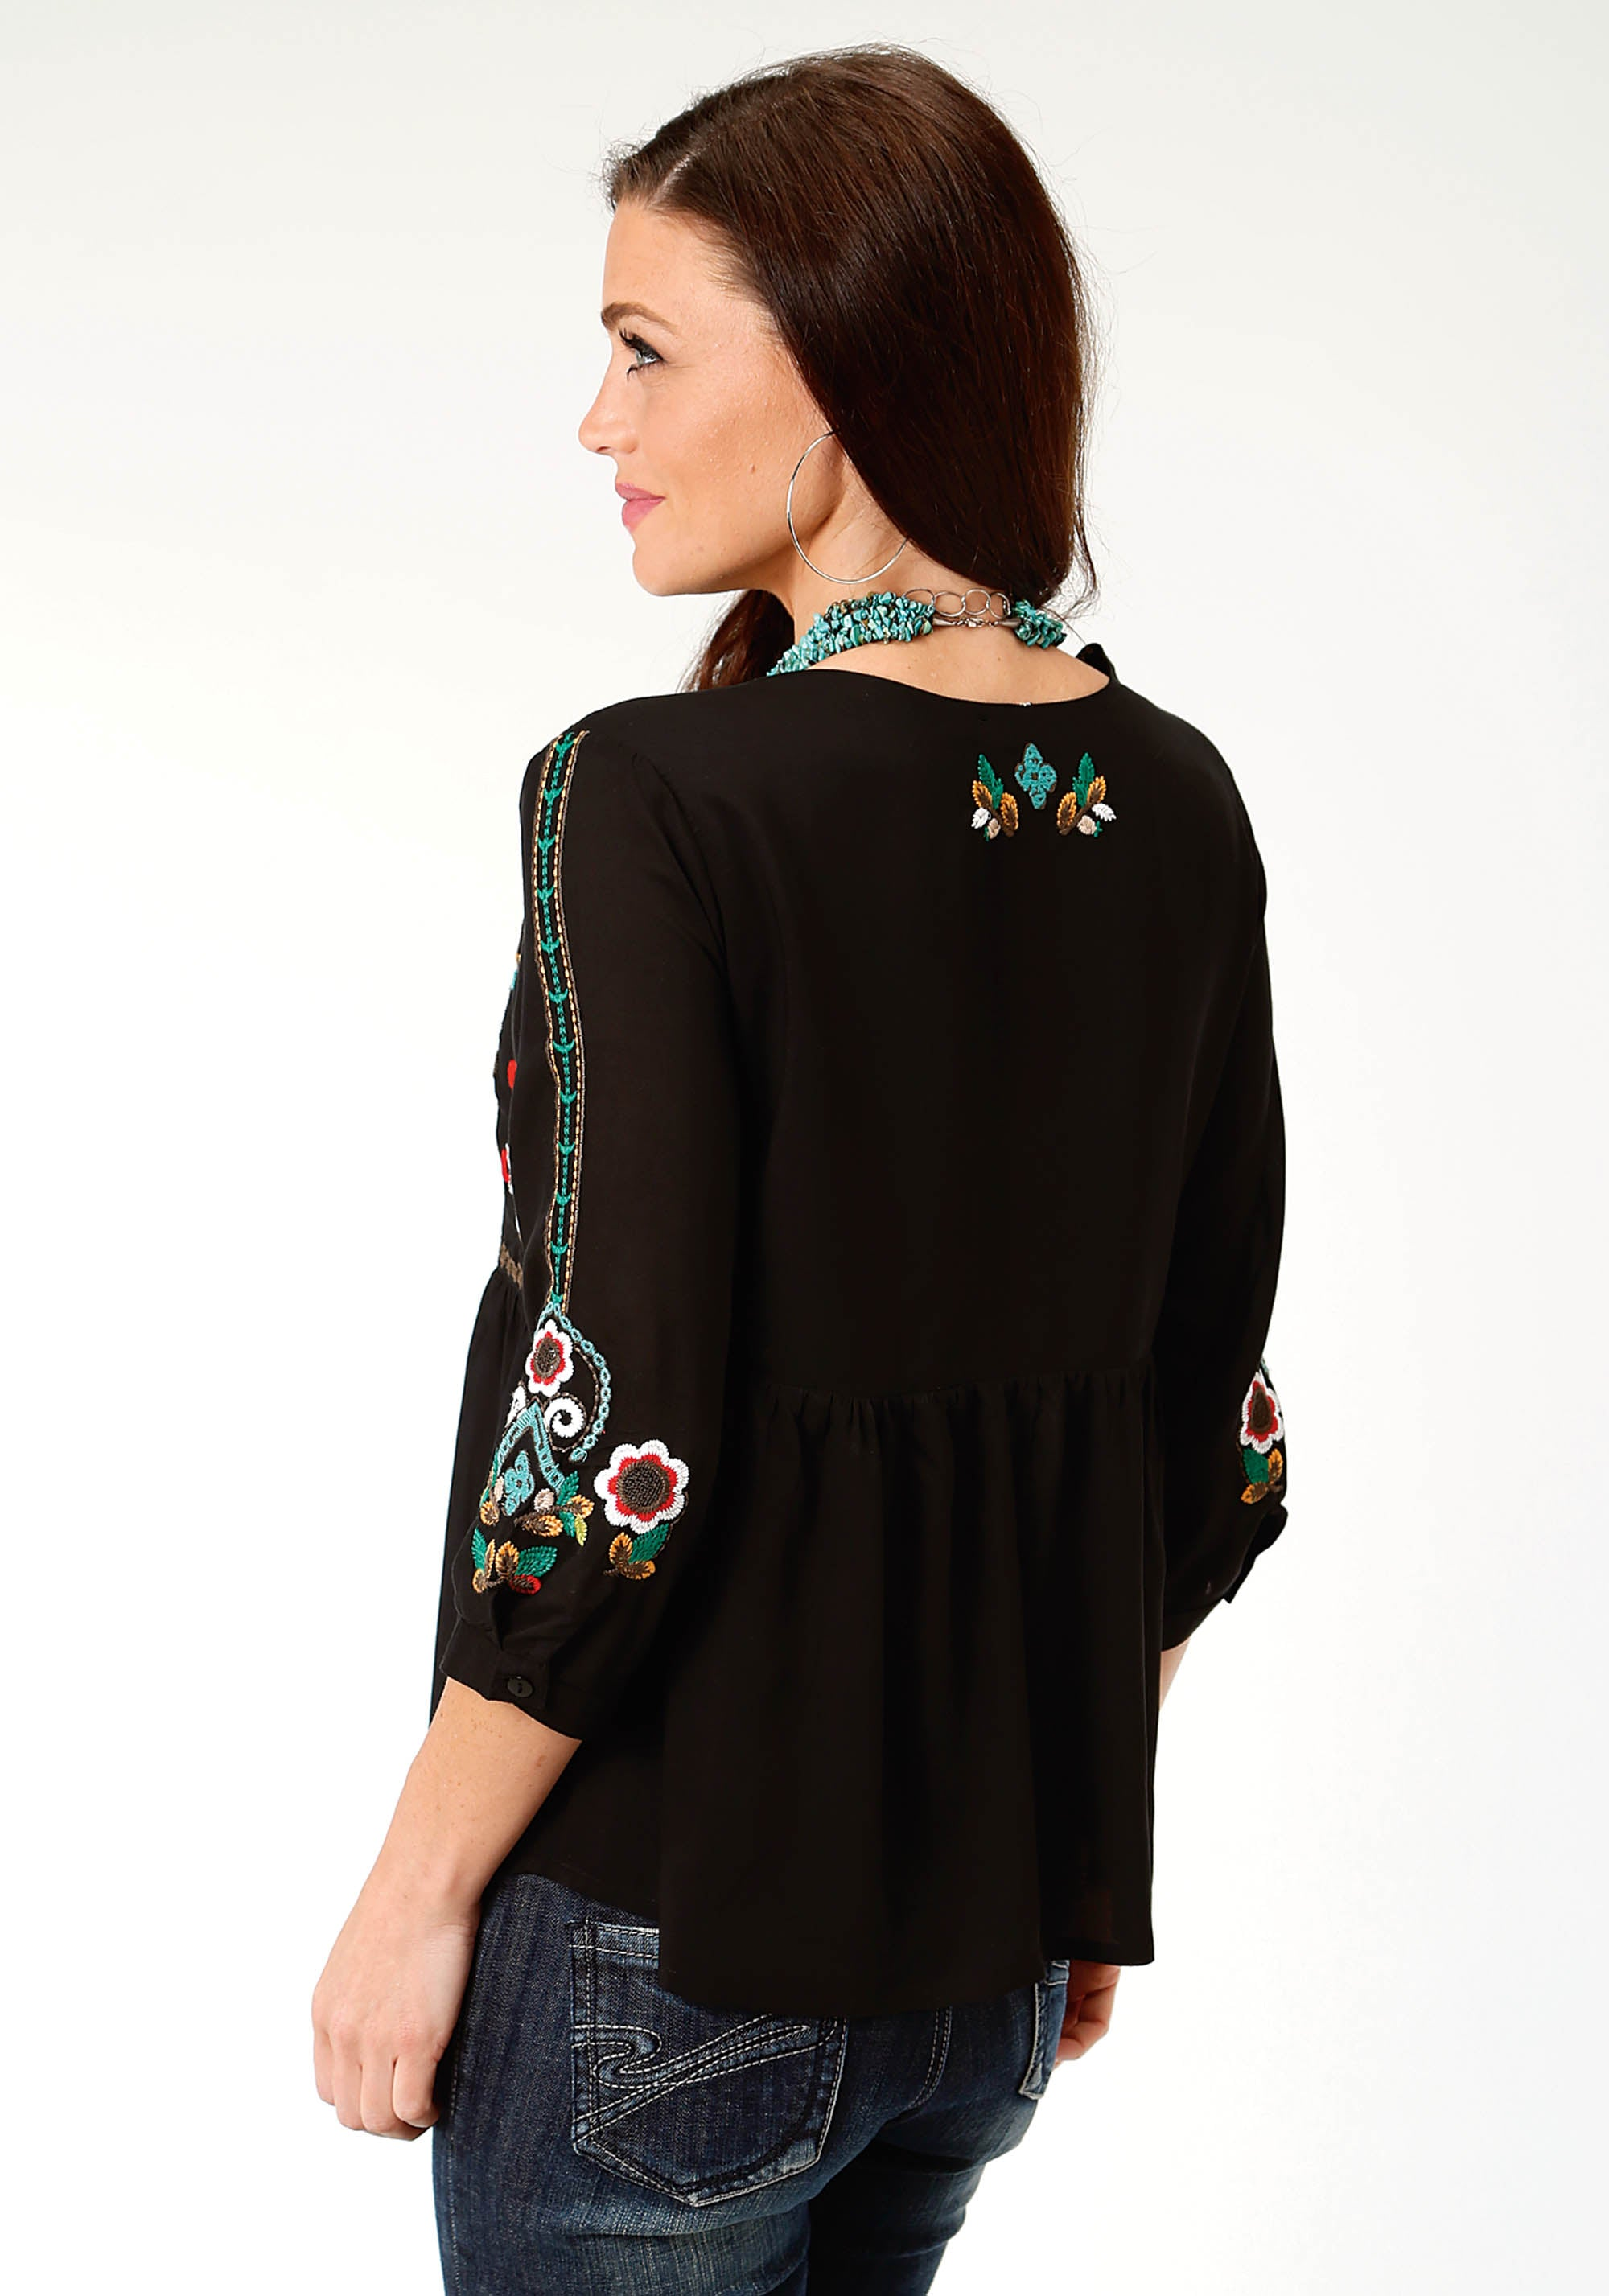 ROPER WOMENS BLACK 3341 RAYON PEASANT BLOUSE STUDIO WEST- MIDNIGHT GARDEN LONG SLEEVE